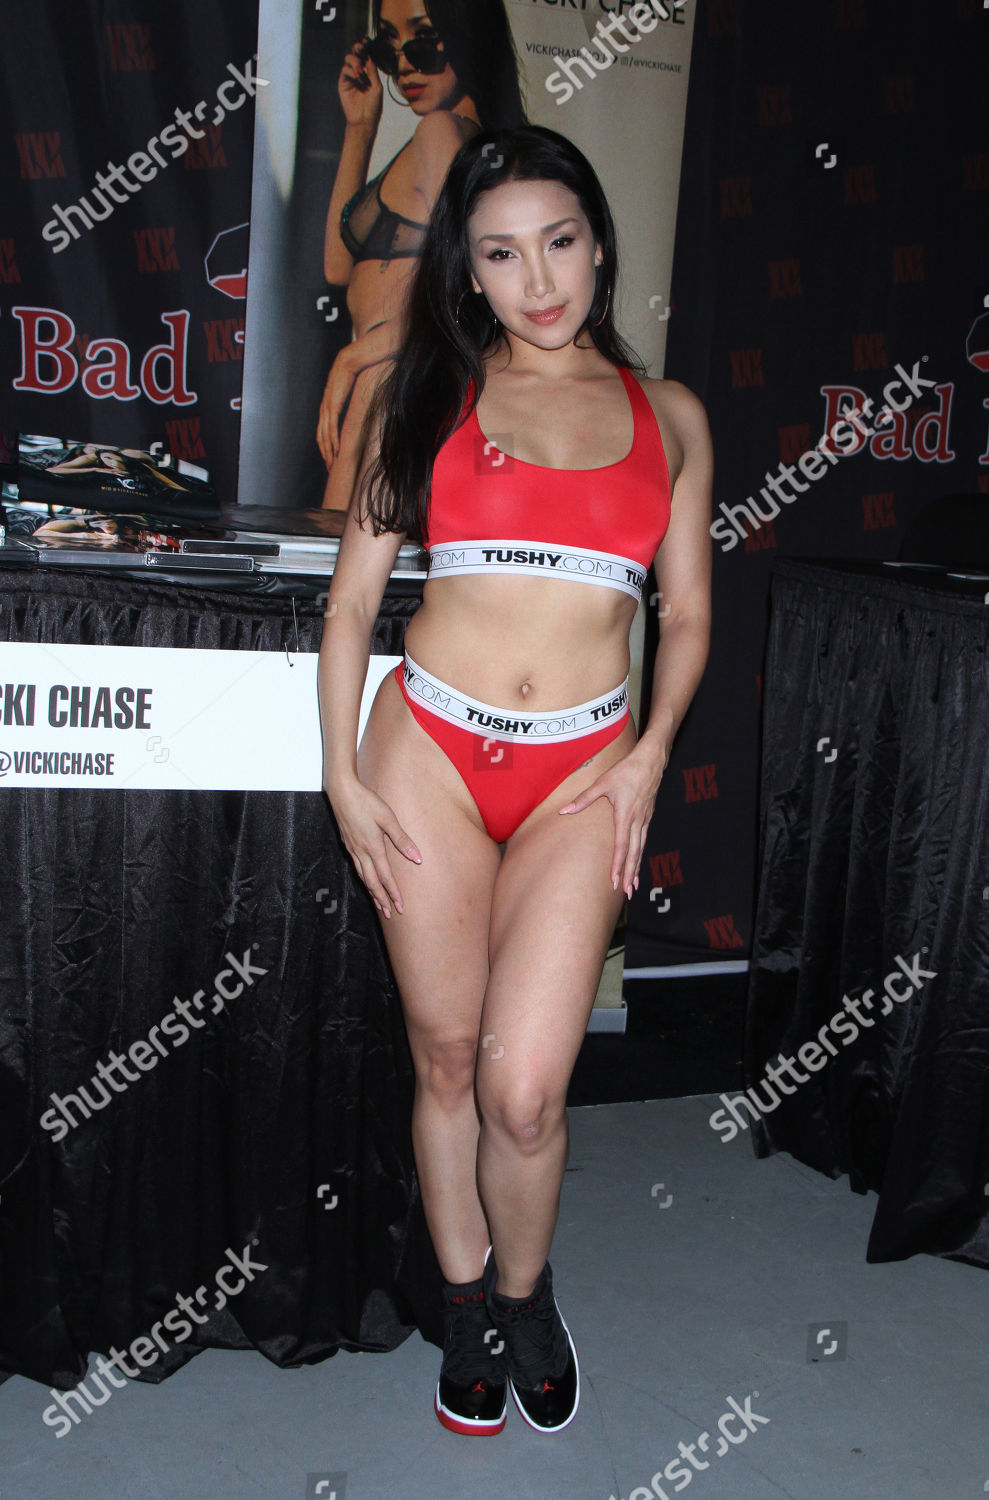 Exxxotica New Jersey Usa Stock Image By Mediapunch For Editorial Use Nov 4 2018